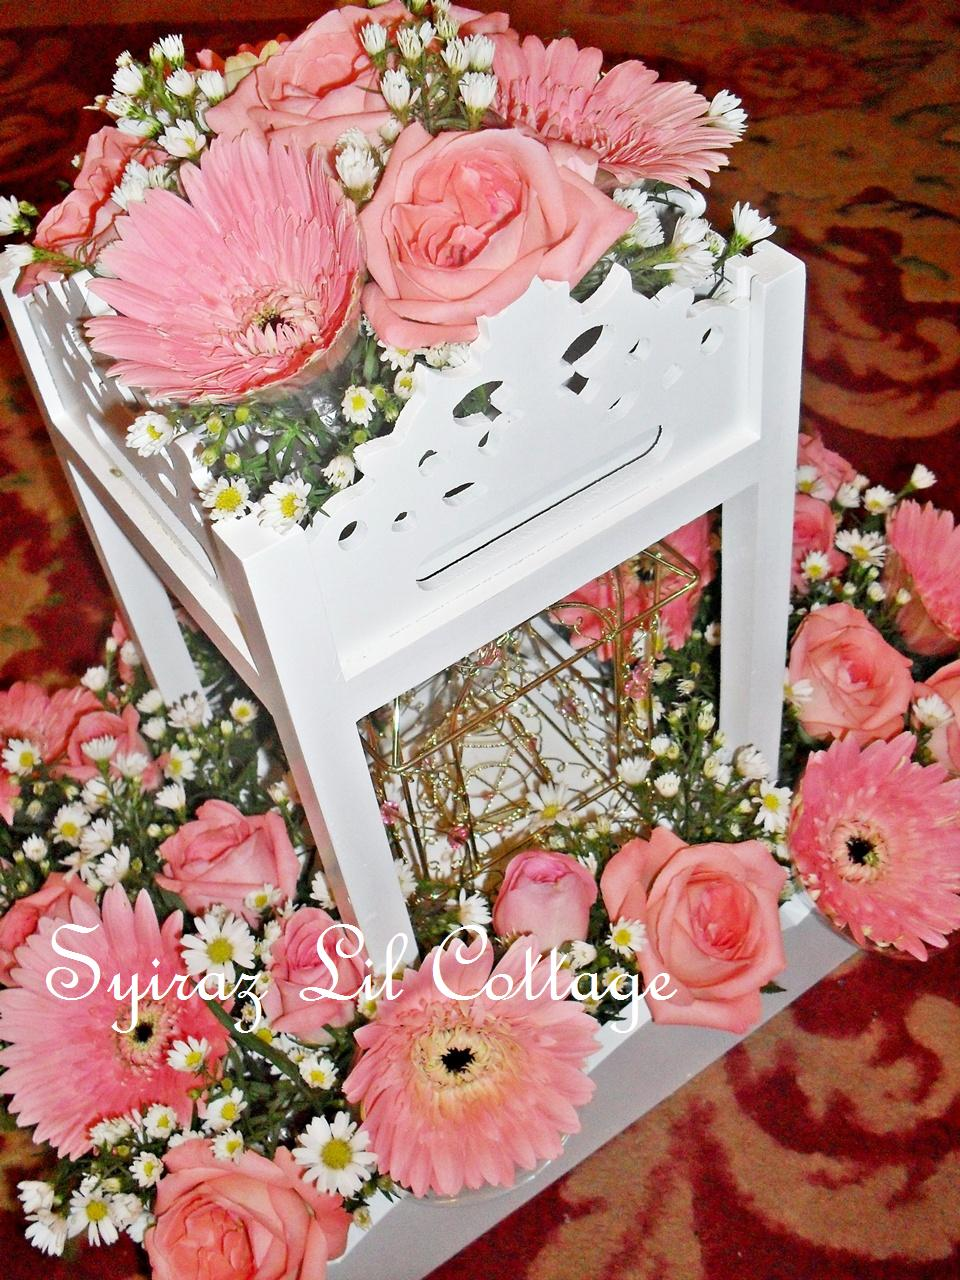 Weddings At Syiraz Lil Cottage Pink White Fresh Flowers Hantaran